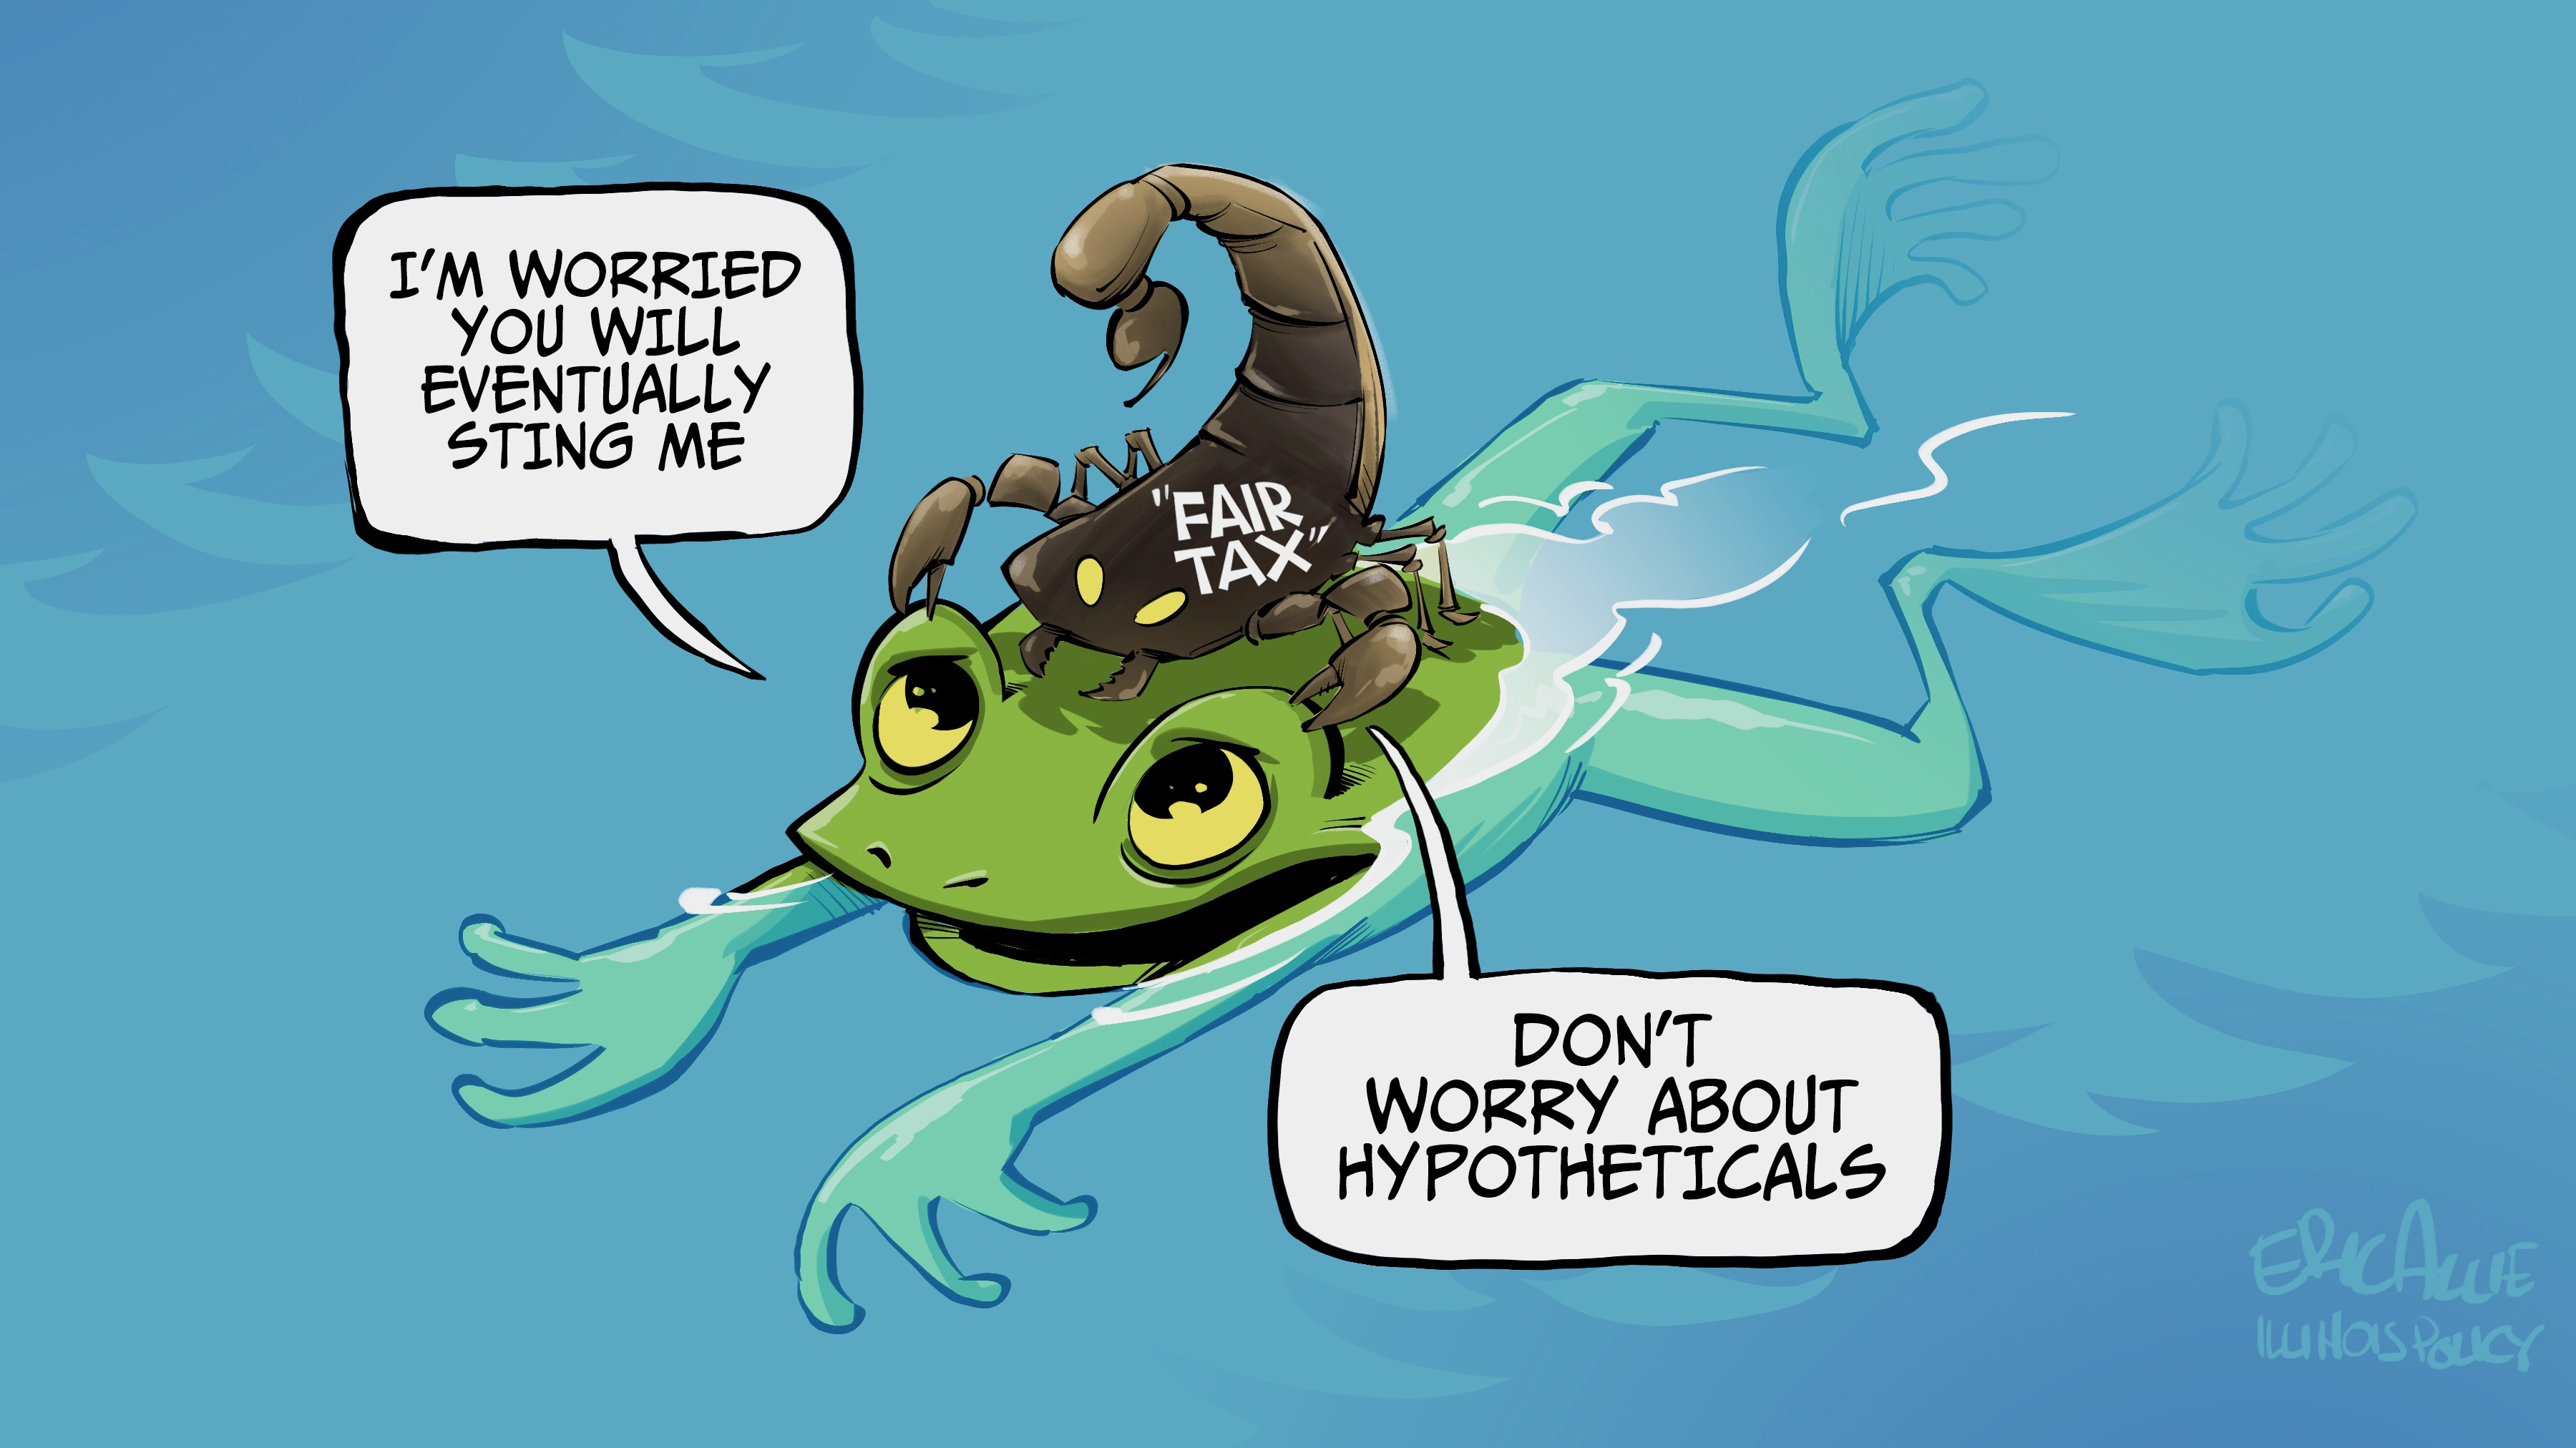 Fair tax: Scorpion and the Frog